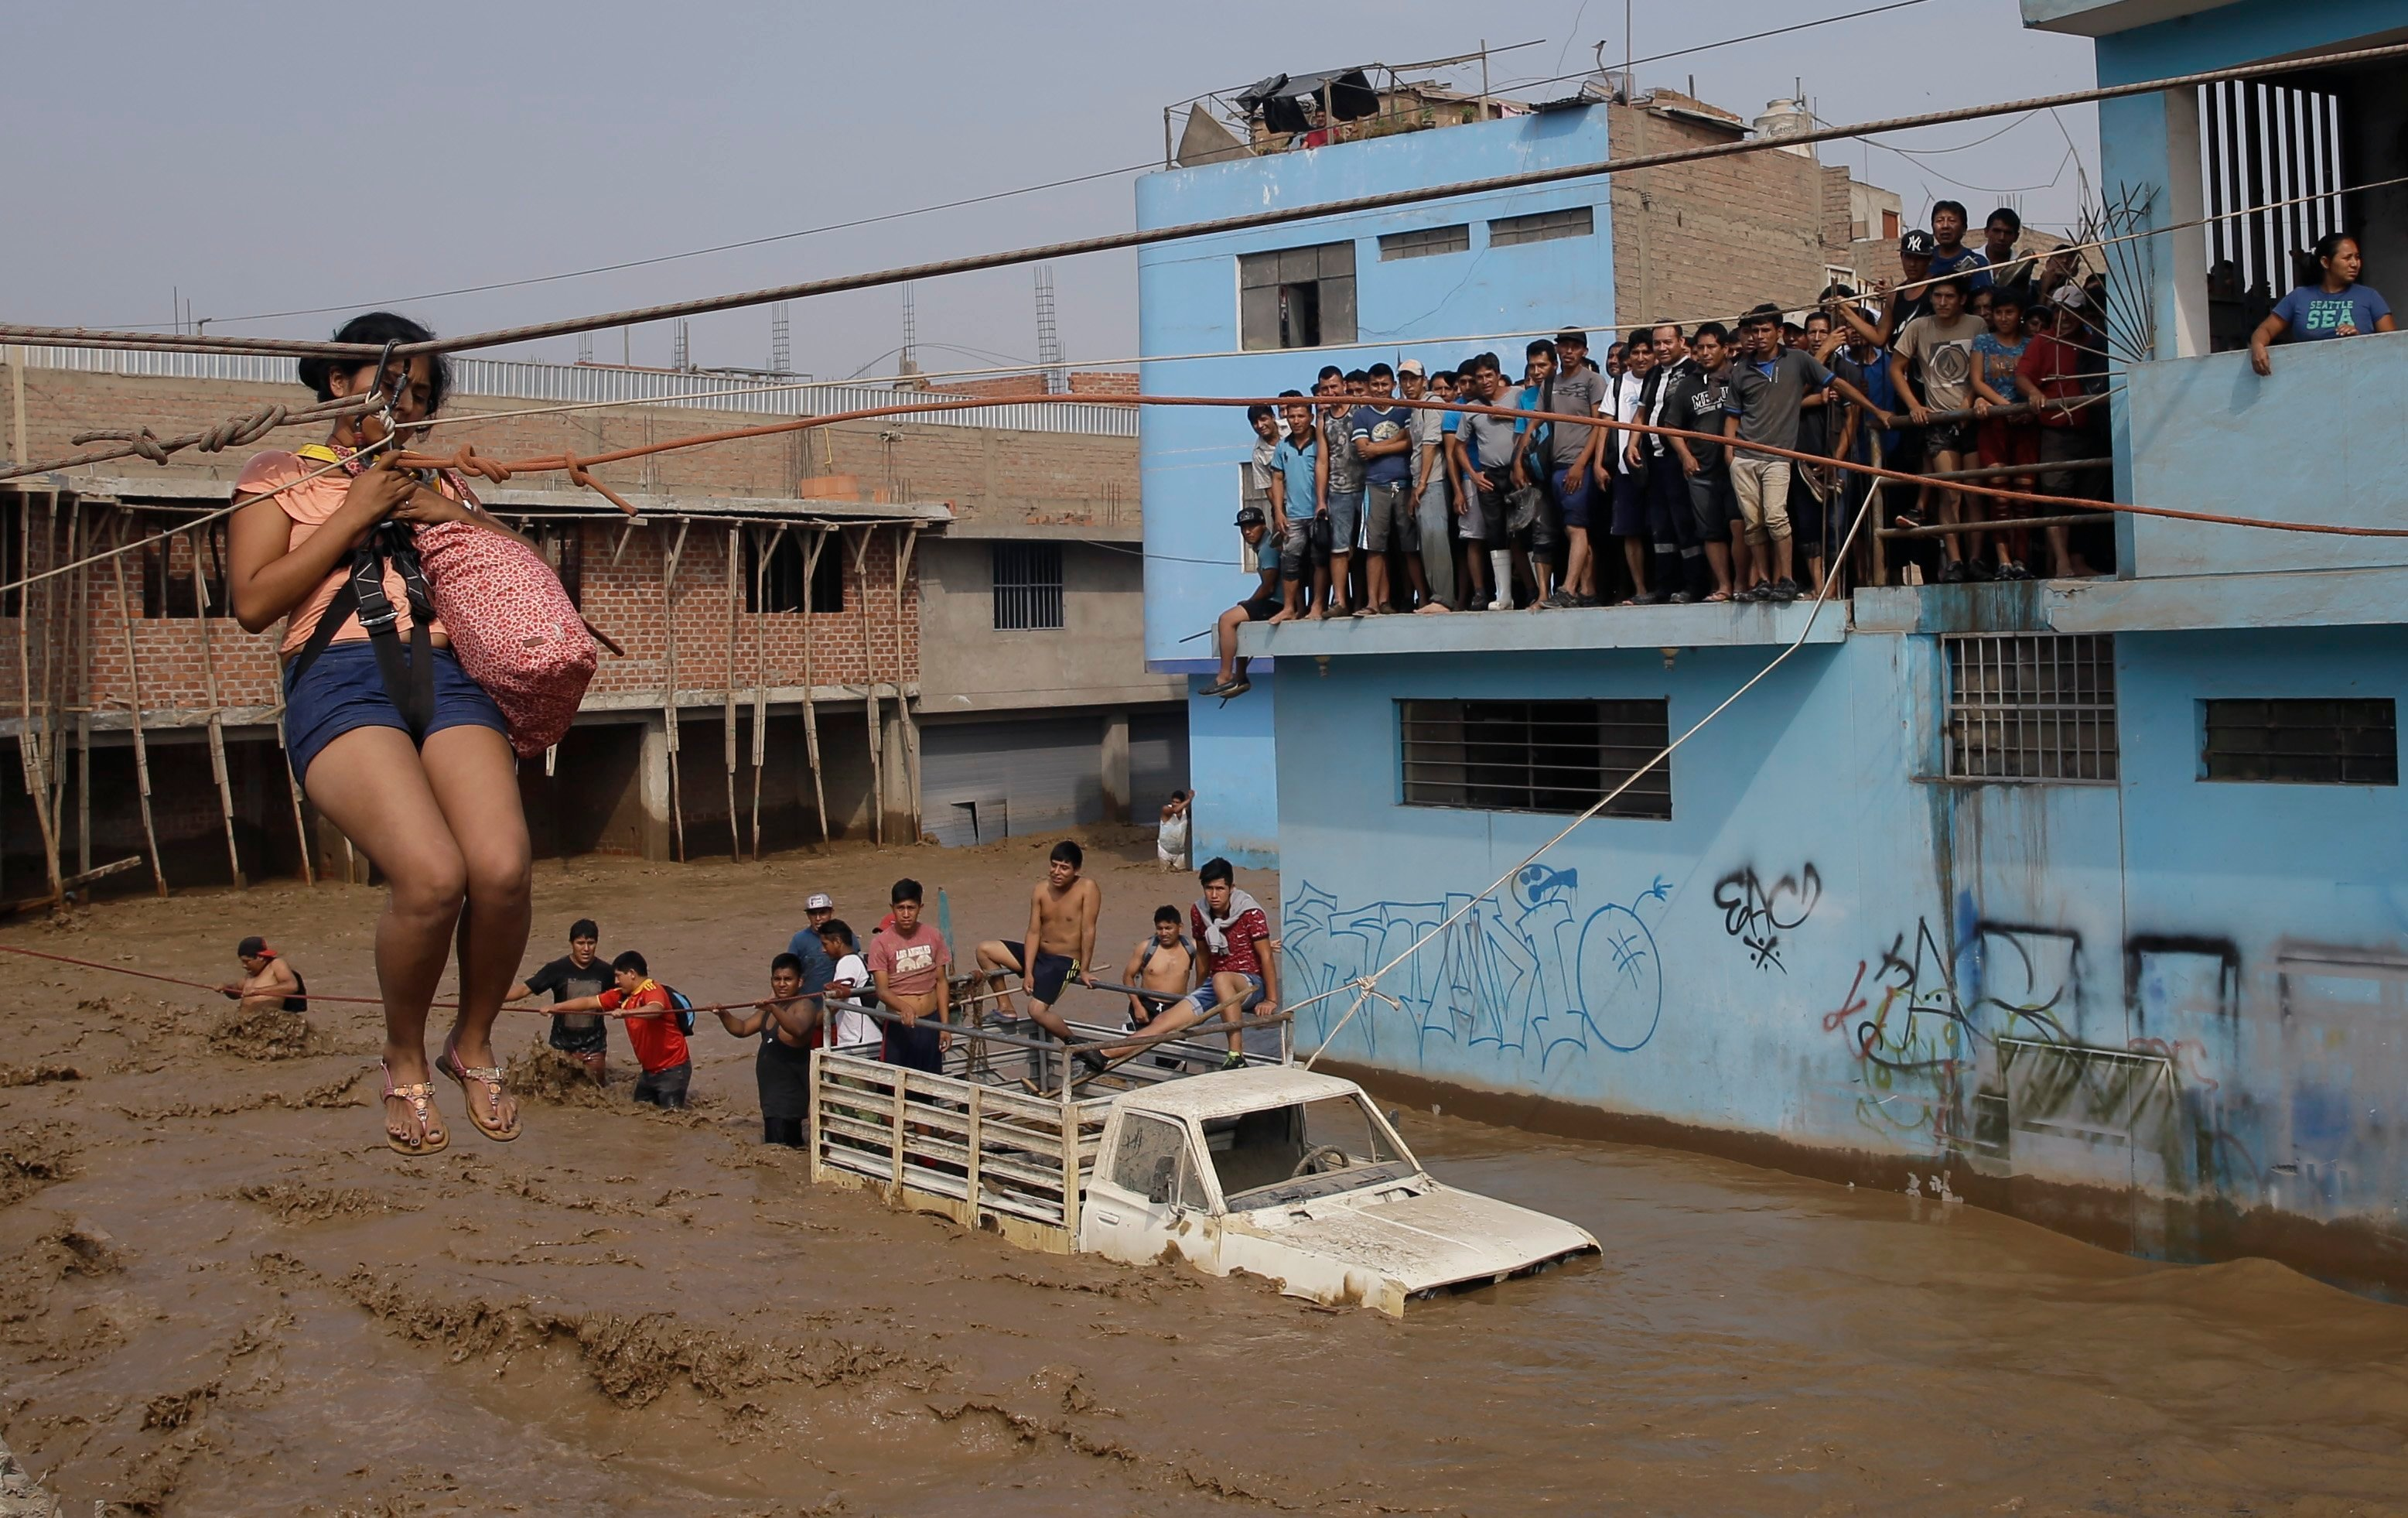 A woman is pulled to safety in a zipline harness in Lima, Peru, Friday, March 17, 2017. Intense rains and mudslides over the past three days have wrought havoc around the Andean nation and caught residents in Lima, a desert city of 10 million where it alm